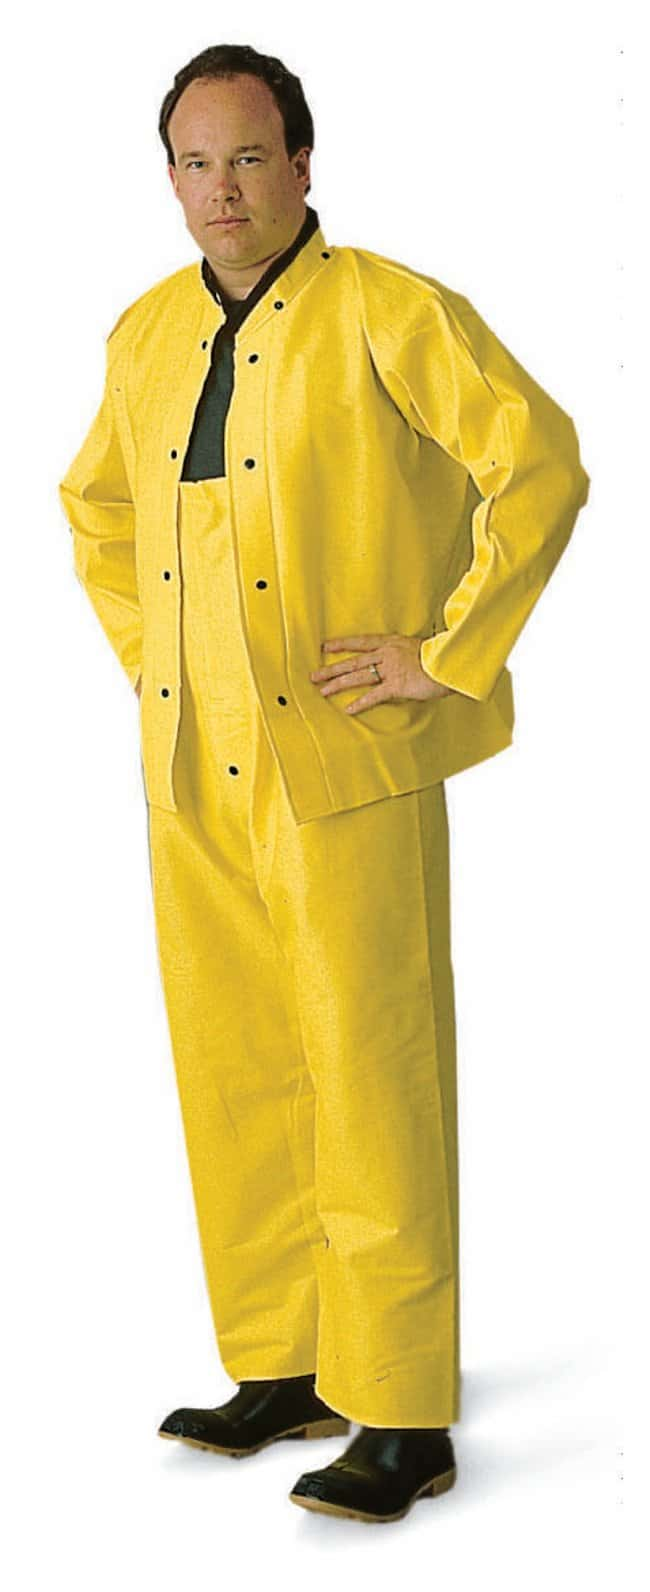 MCR Safety Heavy-Duty Ribbed PVC Suit Size (fits chest/waist): X-Large